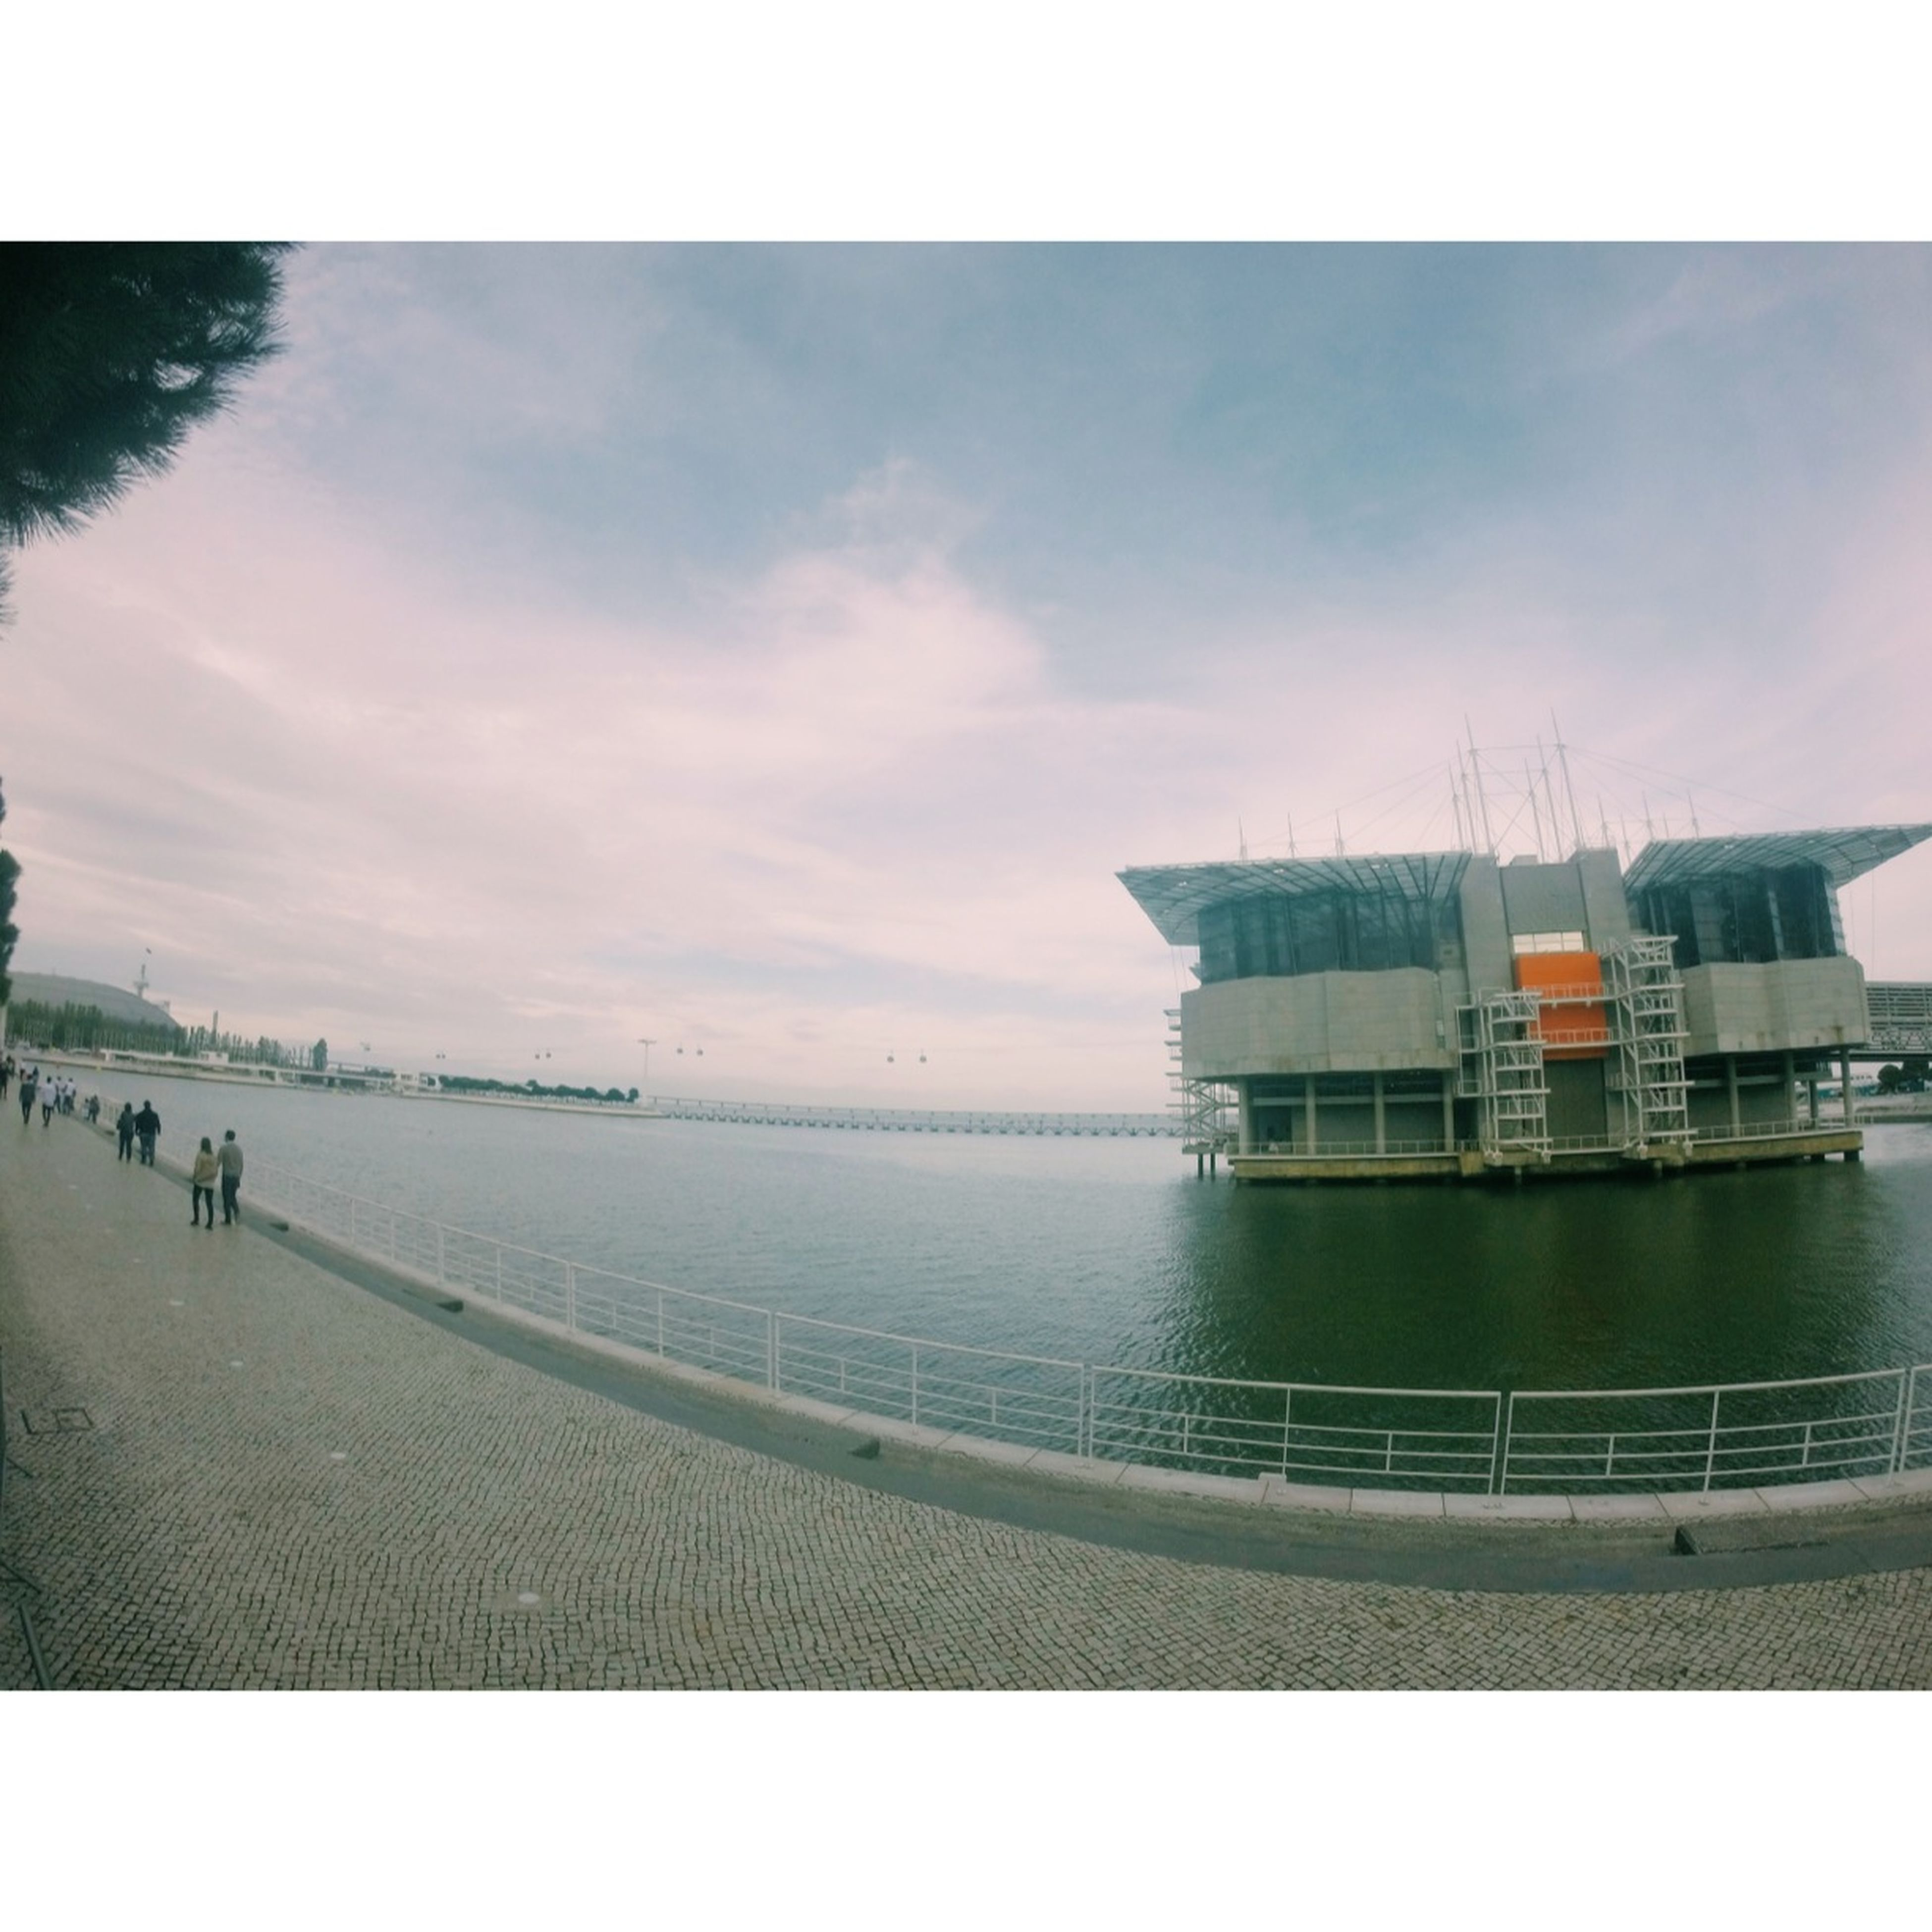 Lisbon Portugal Fish Expo Nice View Landscape Adoroatejinha Gopro River